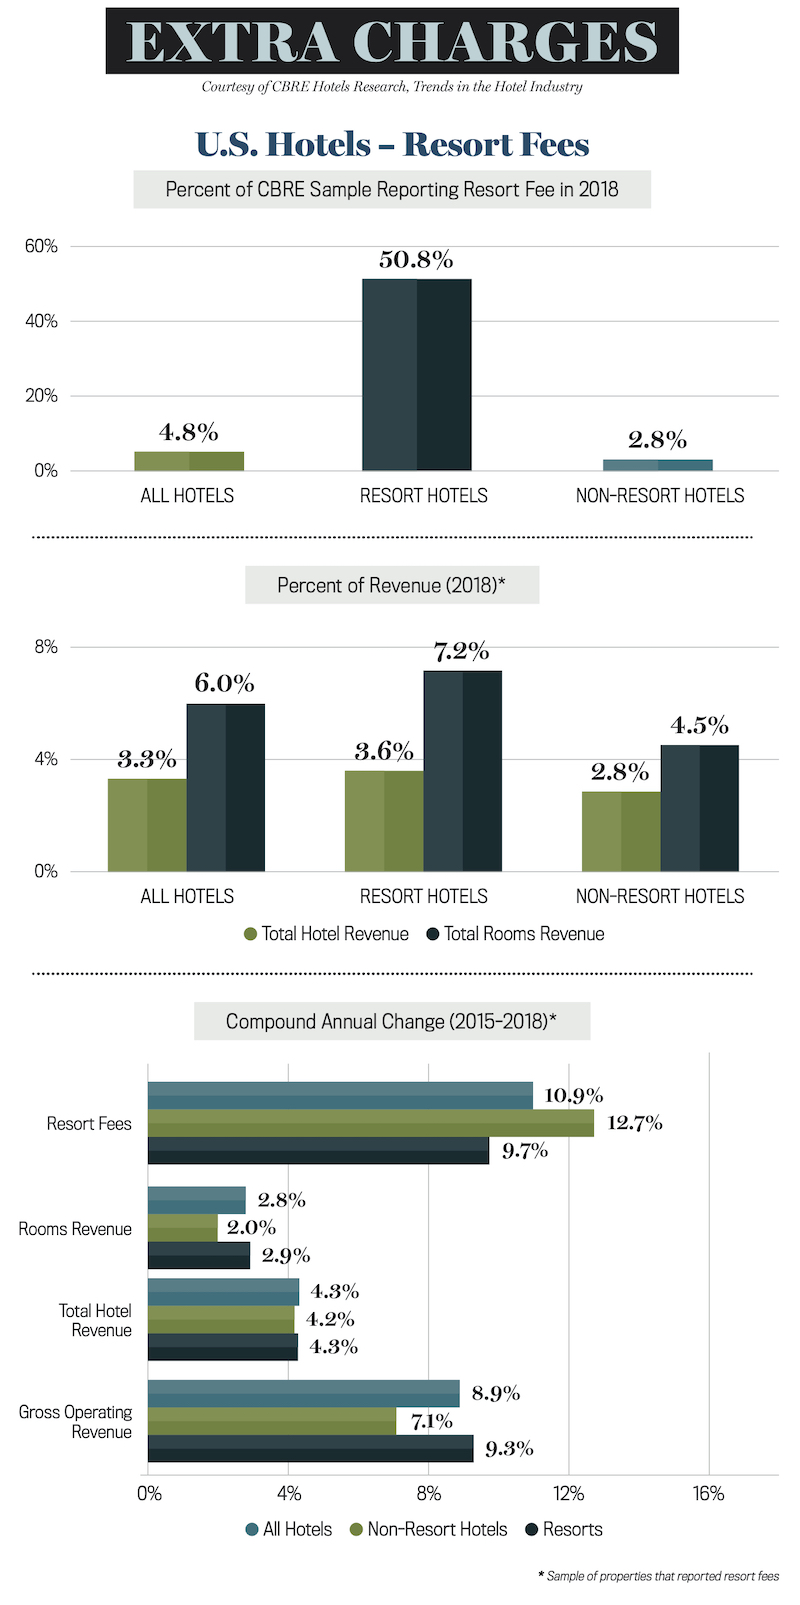 Extra Charges - U.S. hotel resort fees